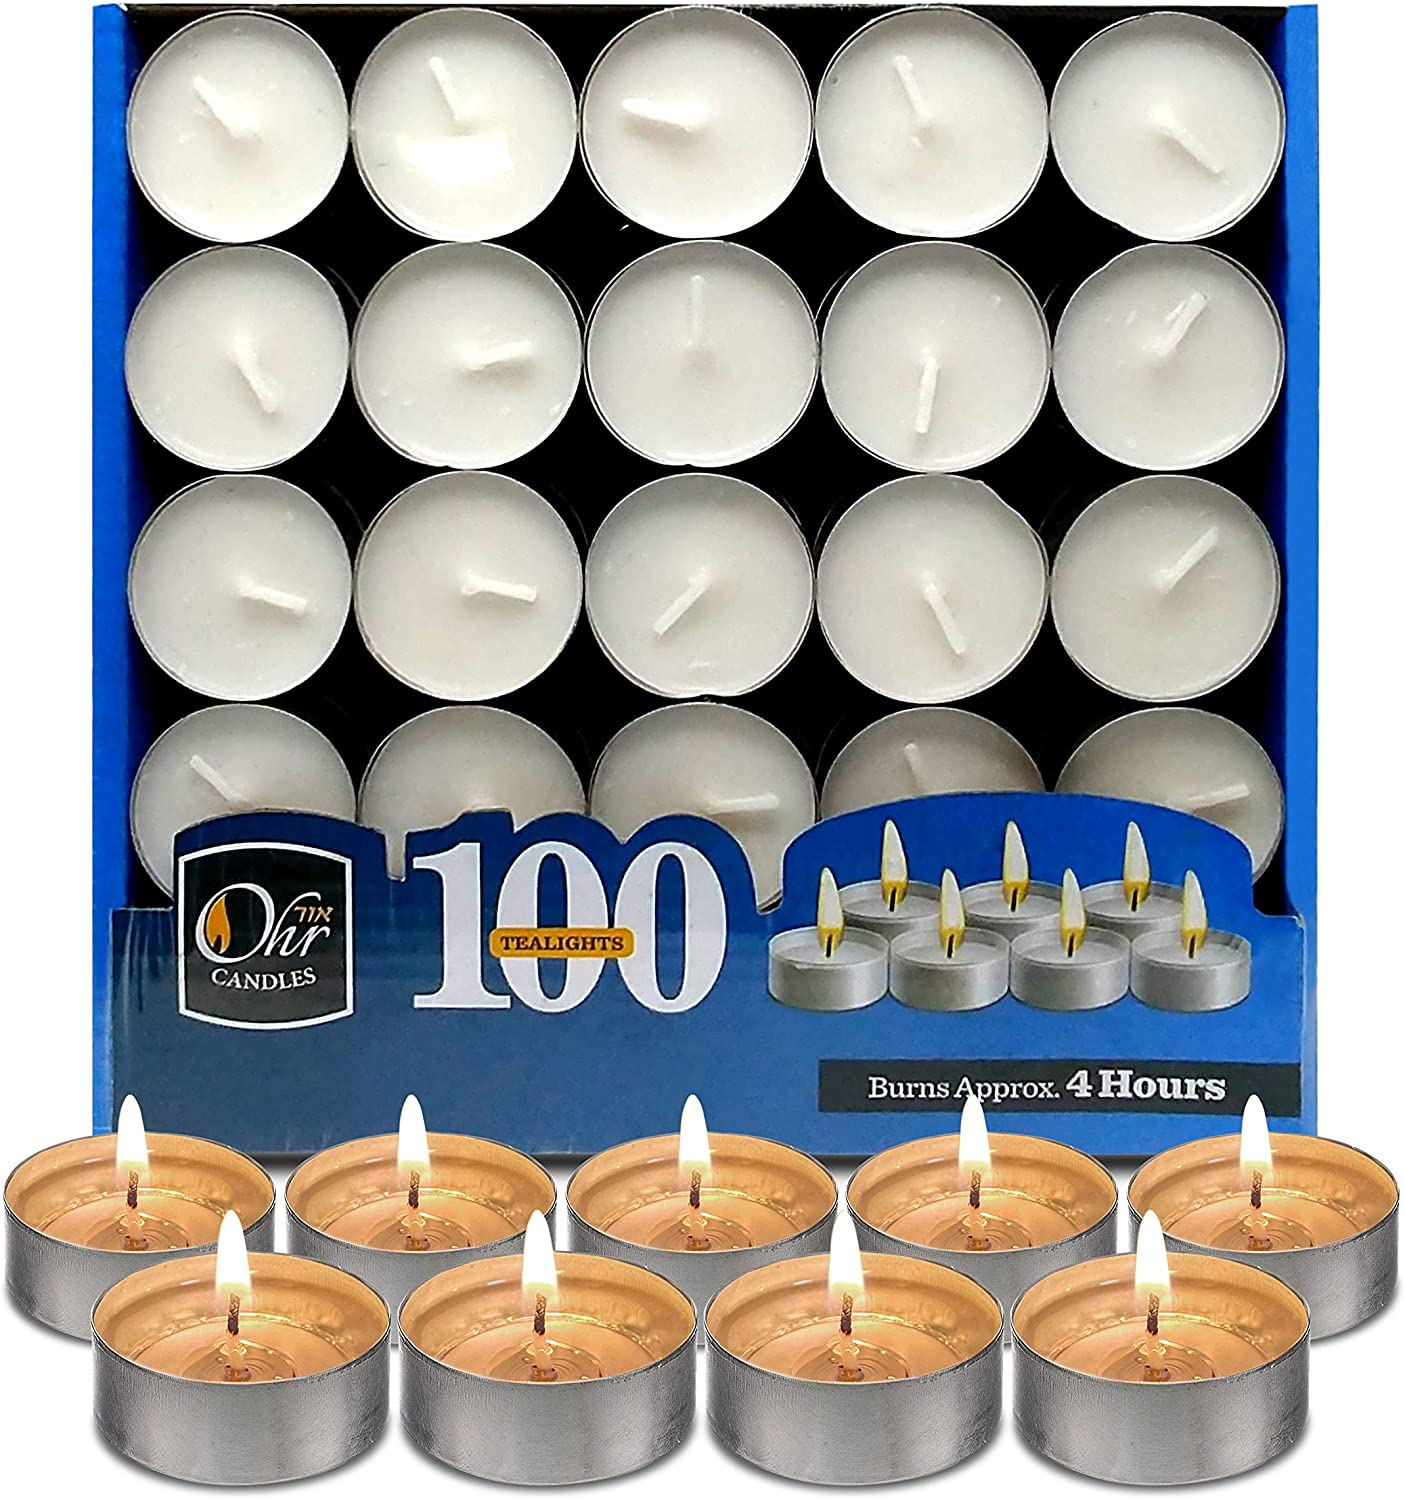 Tea Lights 3.5 Hour Long Burn Night Light Candles Unscented Tealights 100 PACK